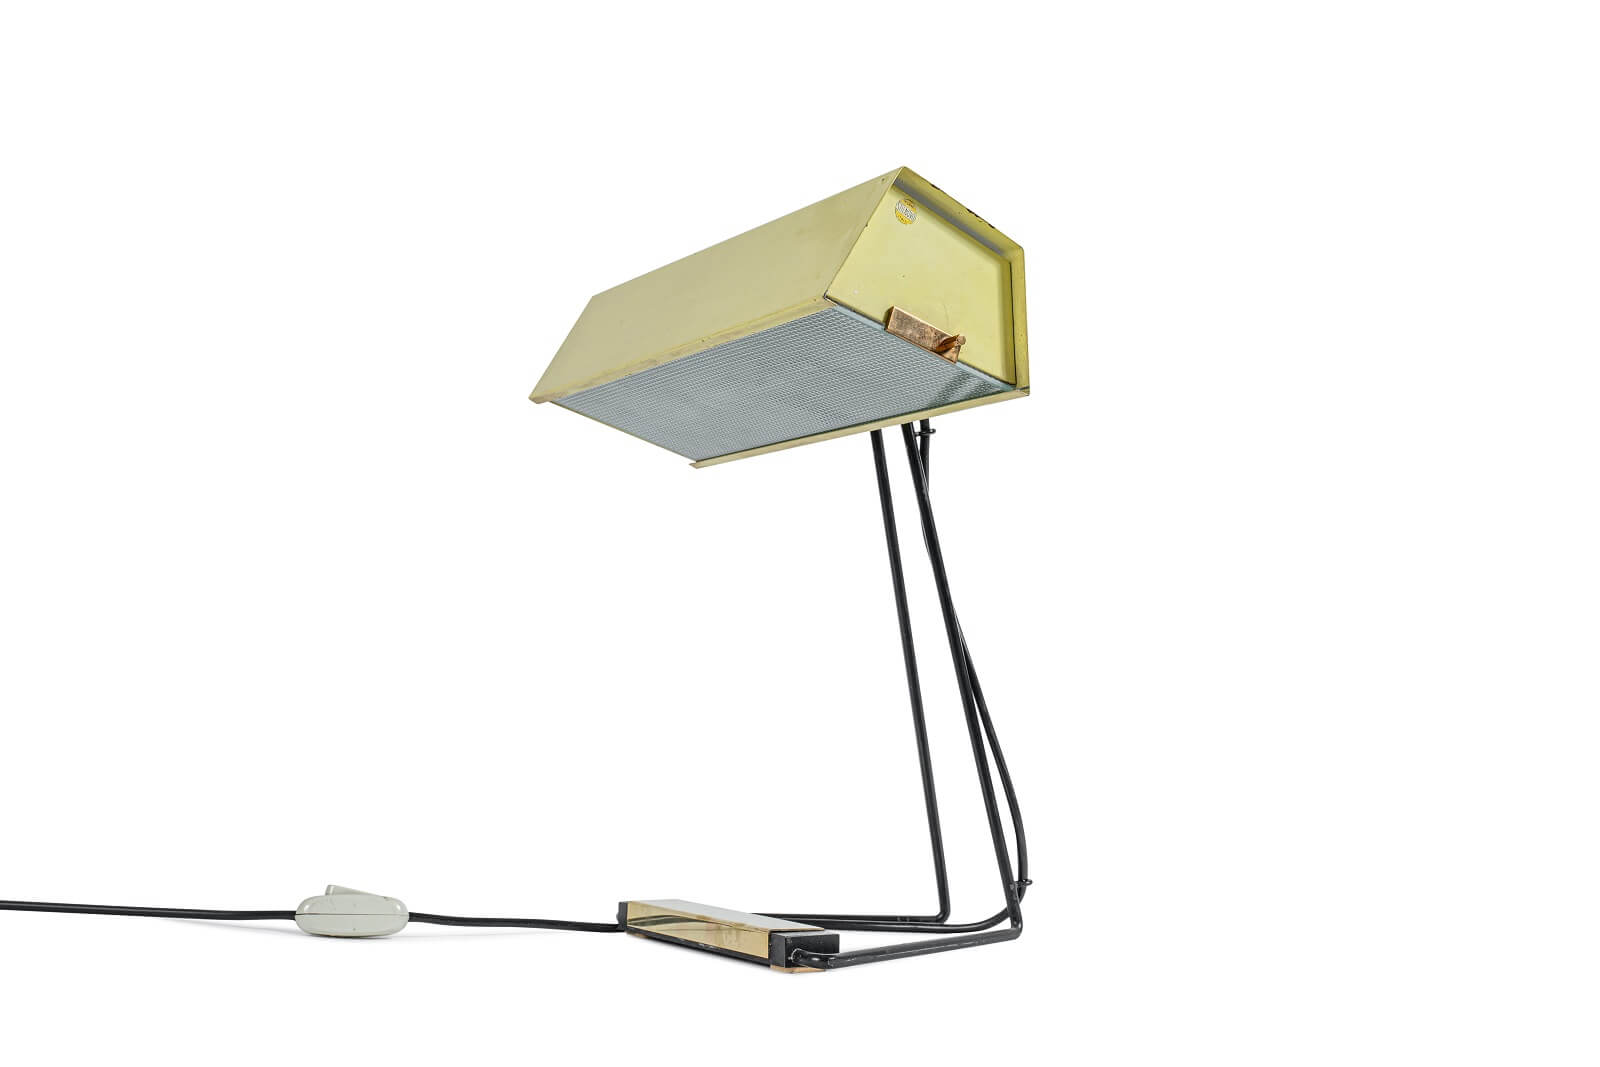 Table lamp mod. 8029 by Stilnovo for sale